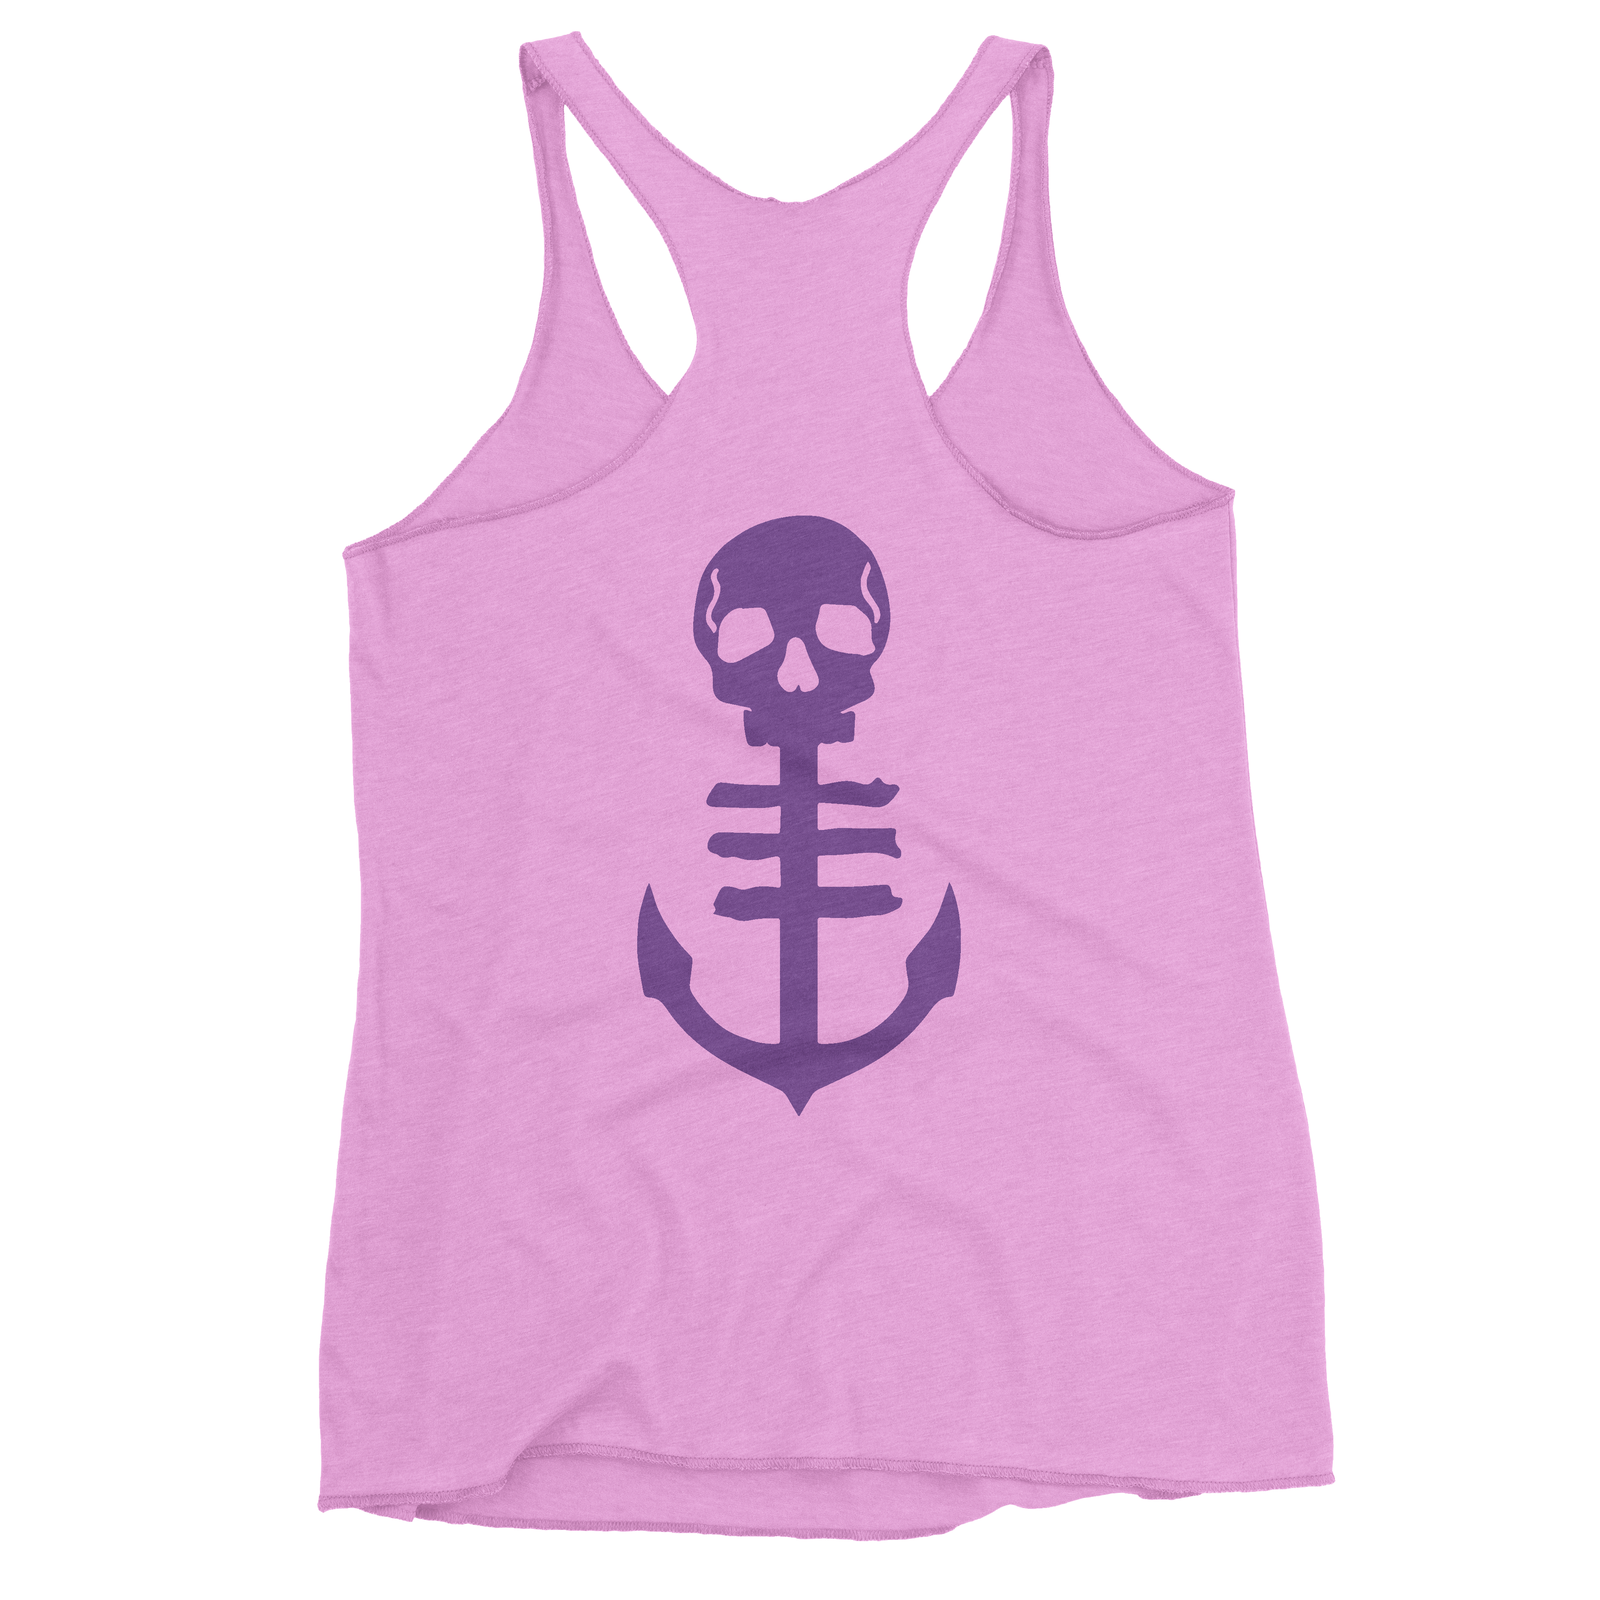 The Iconic Racerback Tank - Lilac